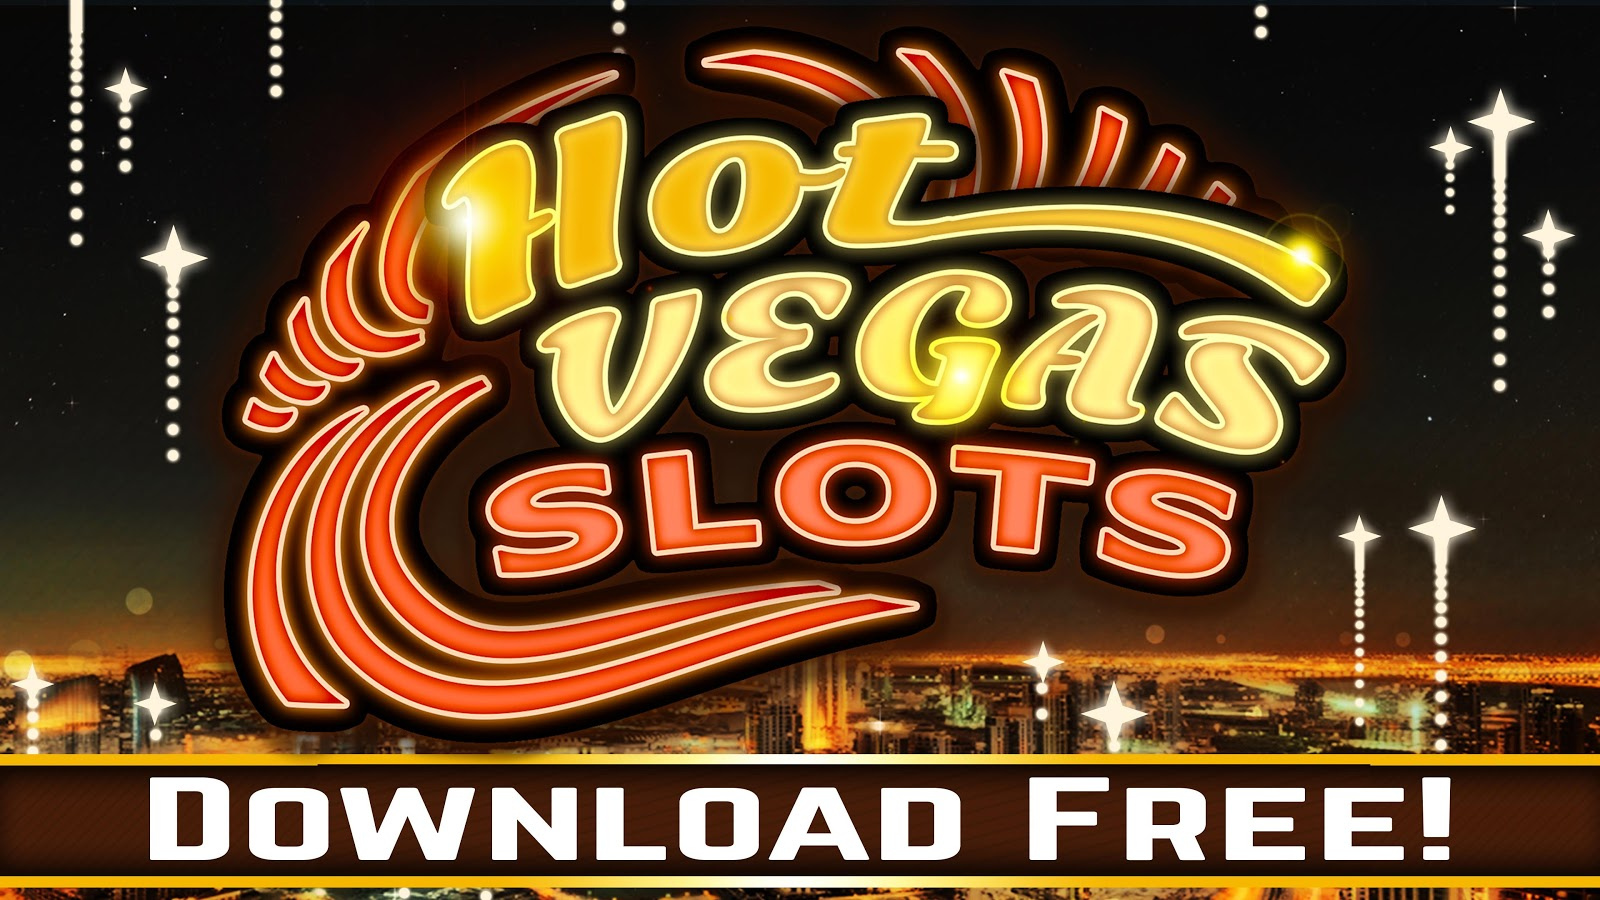 Hottest Bachelor Slot - Try it Online for Free or Real Money